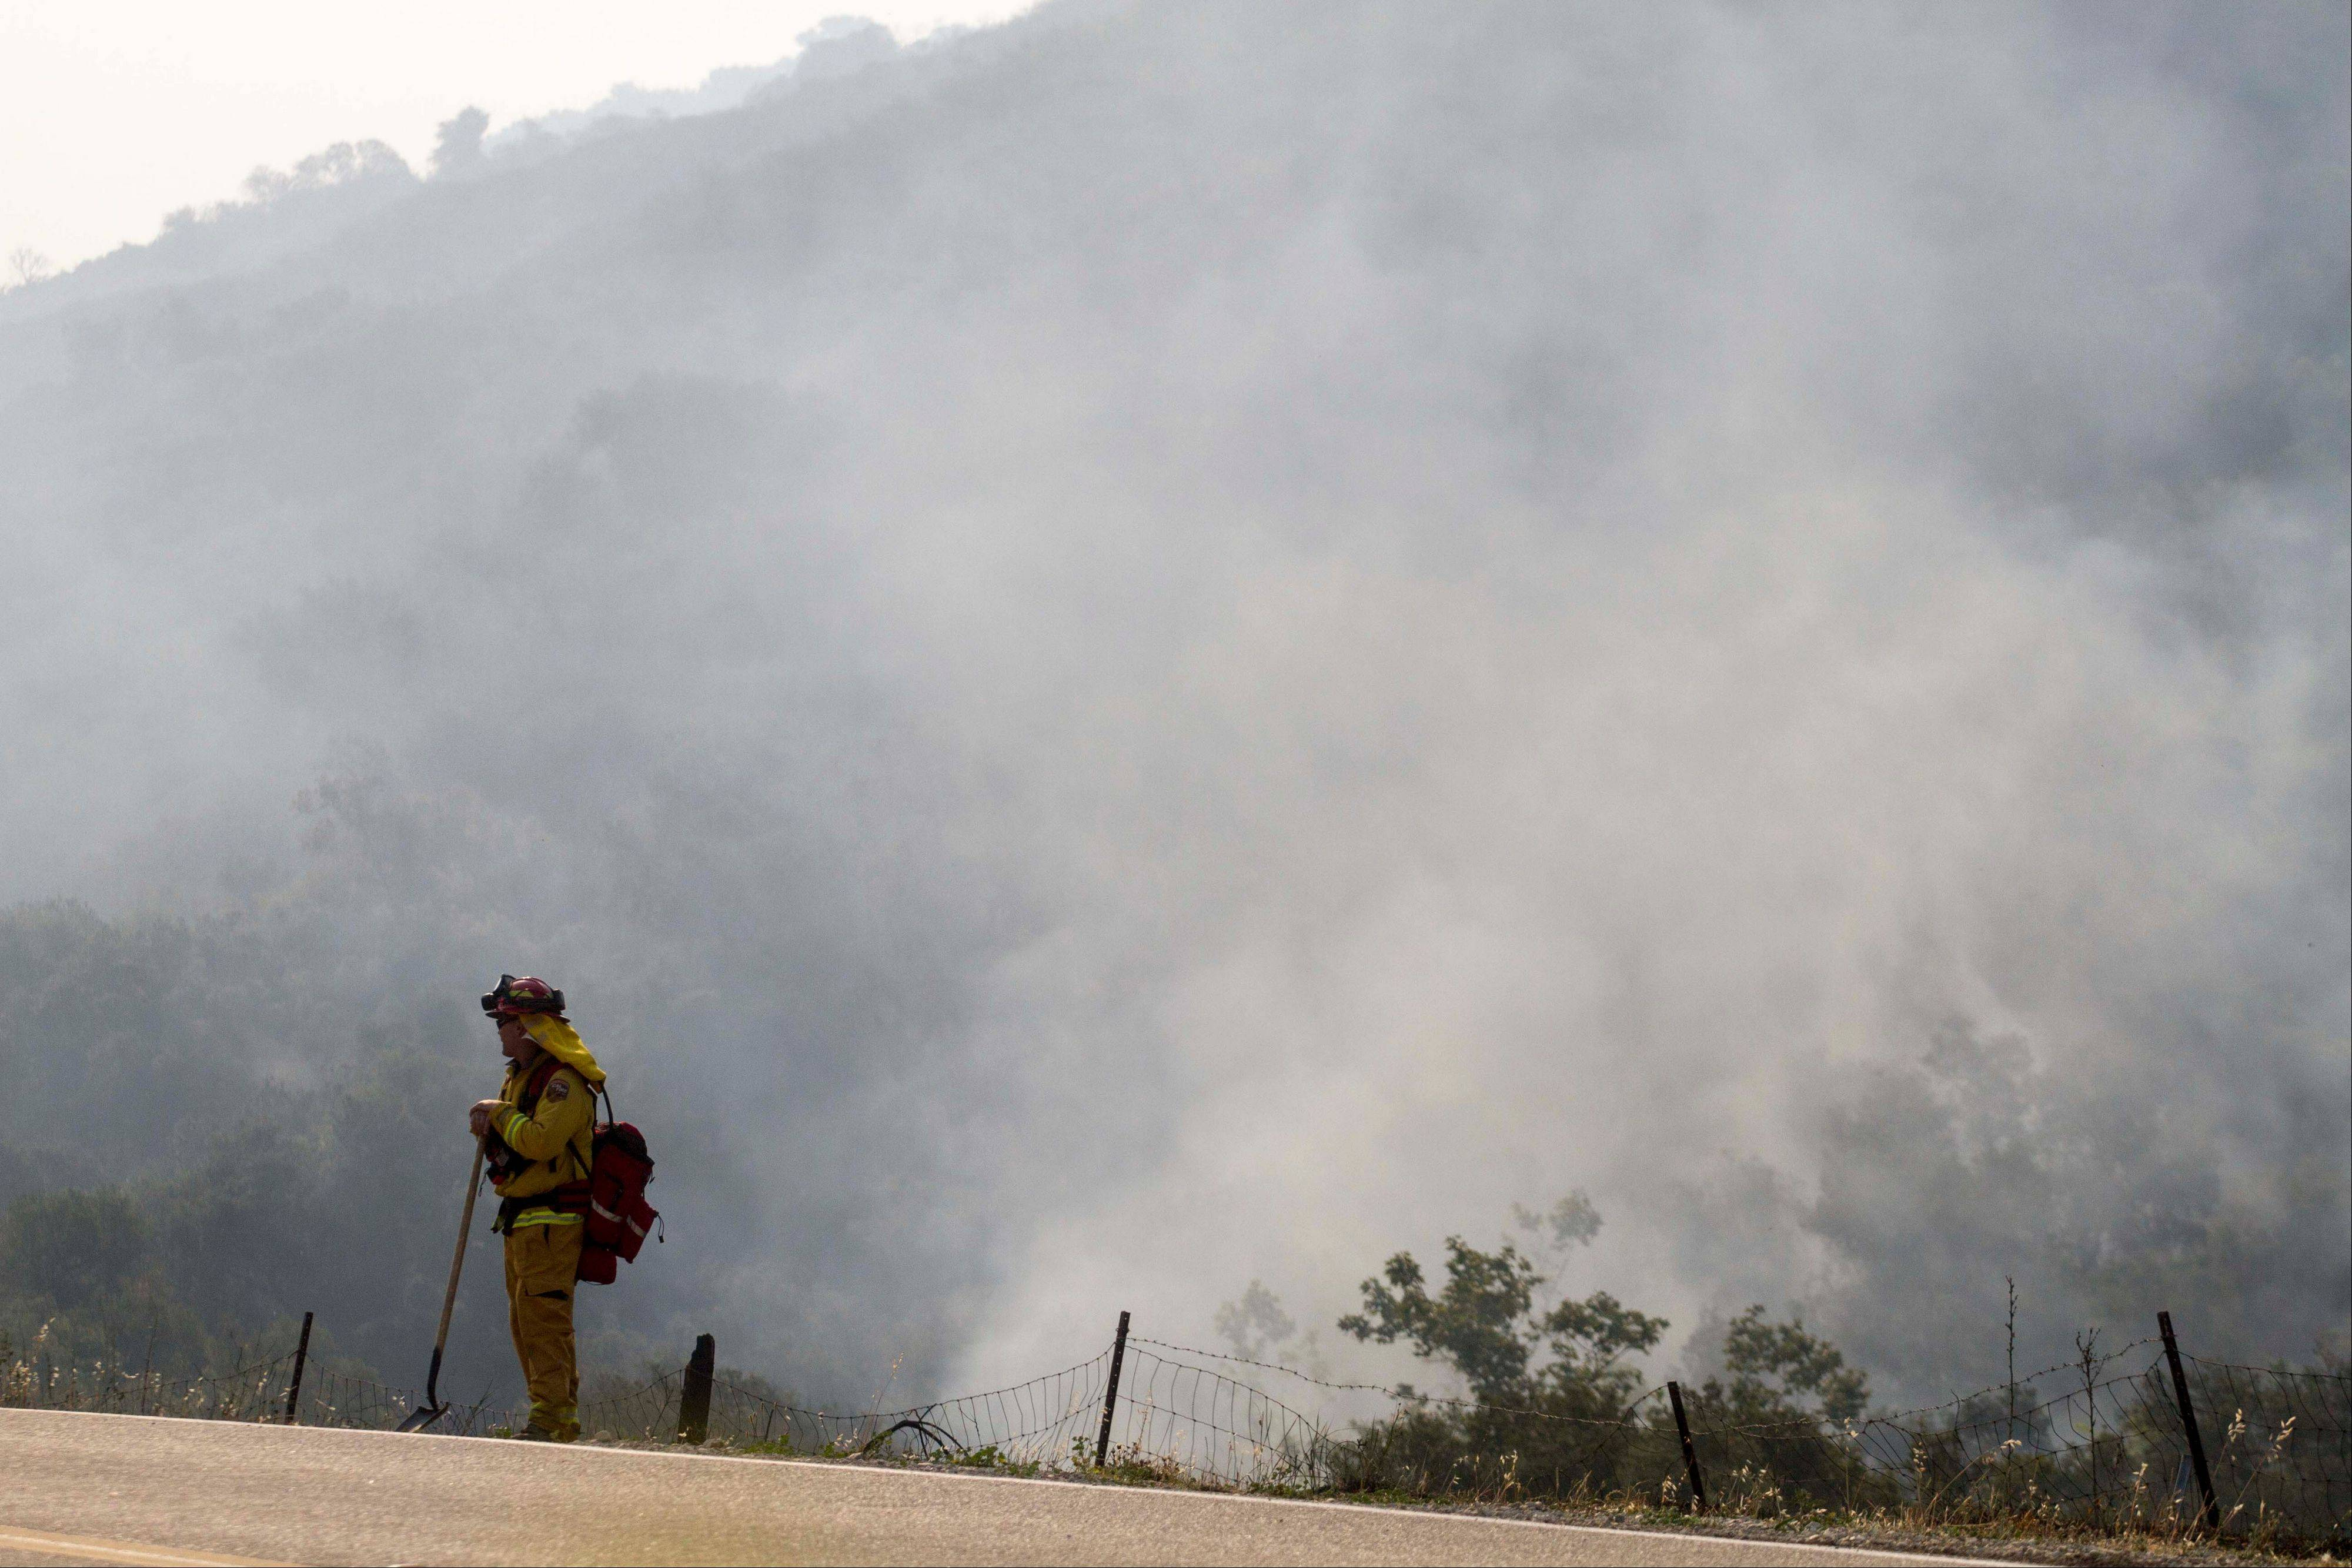 A firefighter stands watch as the smoke rises from the burnt area in Hidden Valley, Calif., Saturday. High winds and withering hot, dry air was replaced by the normal flow of damp air off the Pacific, significantly reducing fire activity.